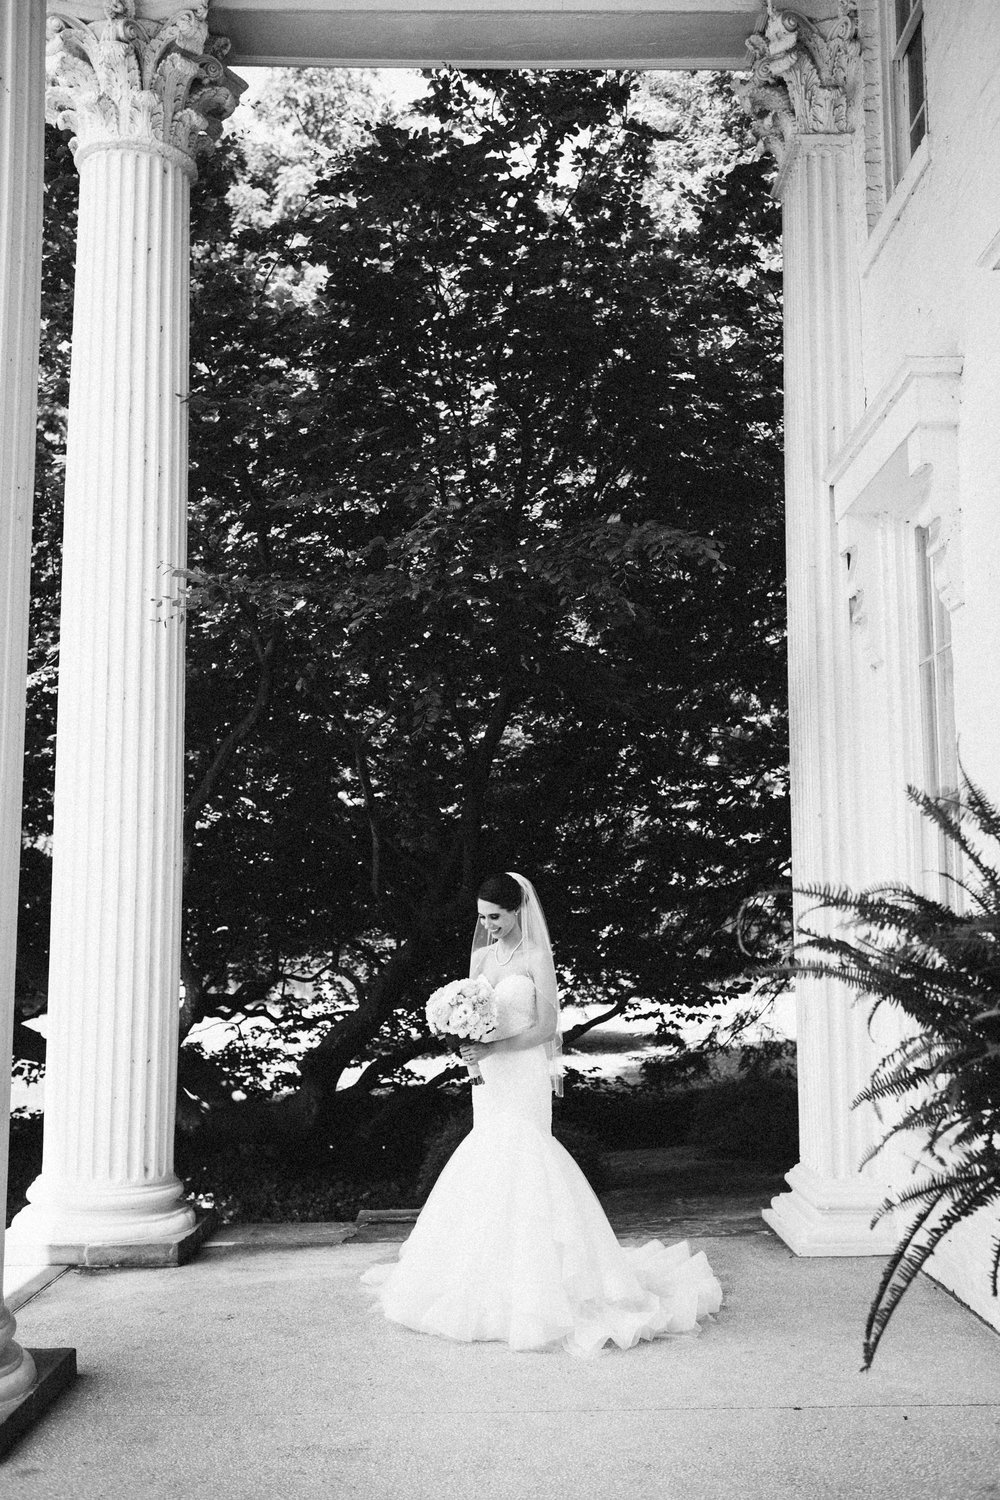 Louisville-Kentucky-Wedding-Elopement-Photographer-Sarah-Katherine-Davis-Photography-Whitehall-Classic-Timeless-Garden-Wedding-230.jpg